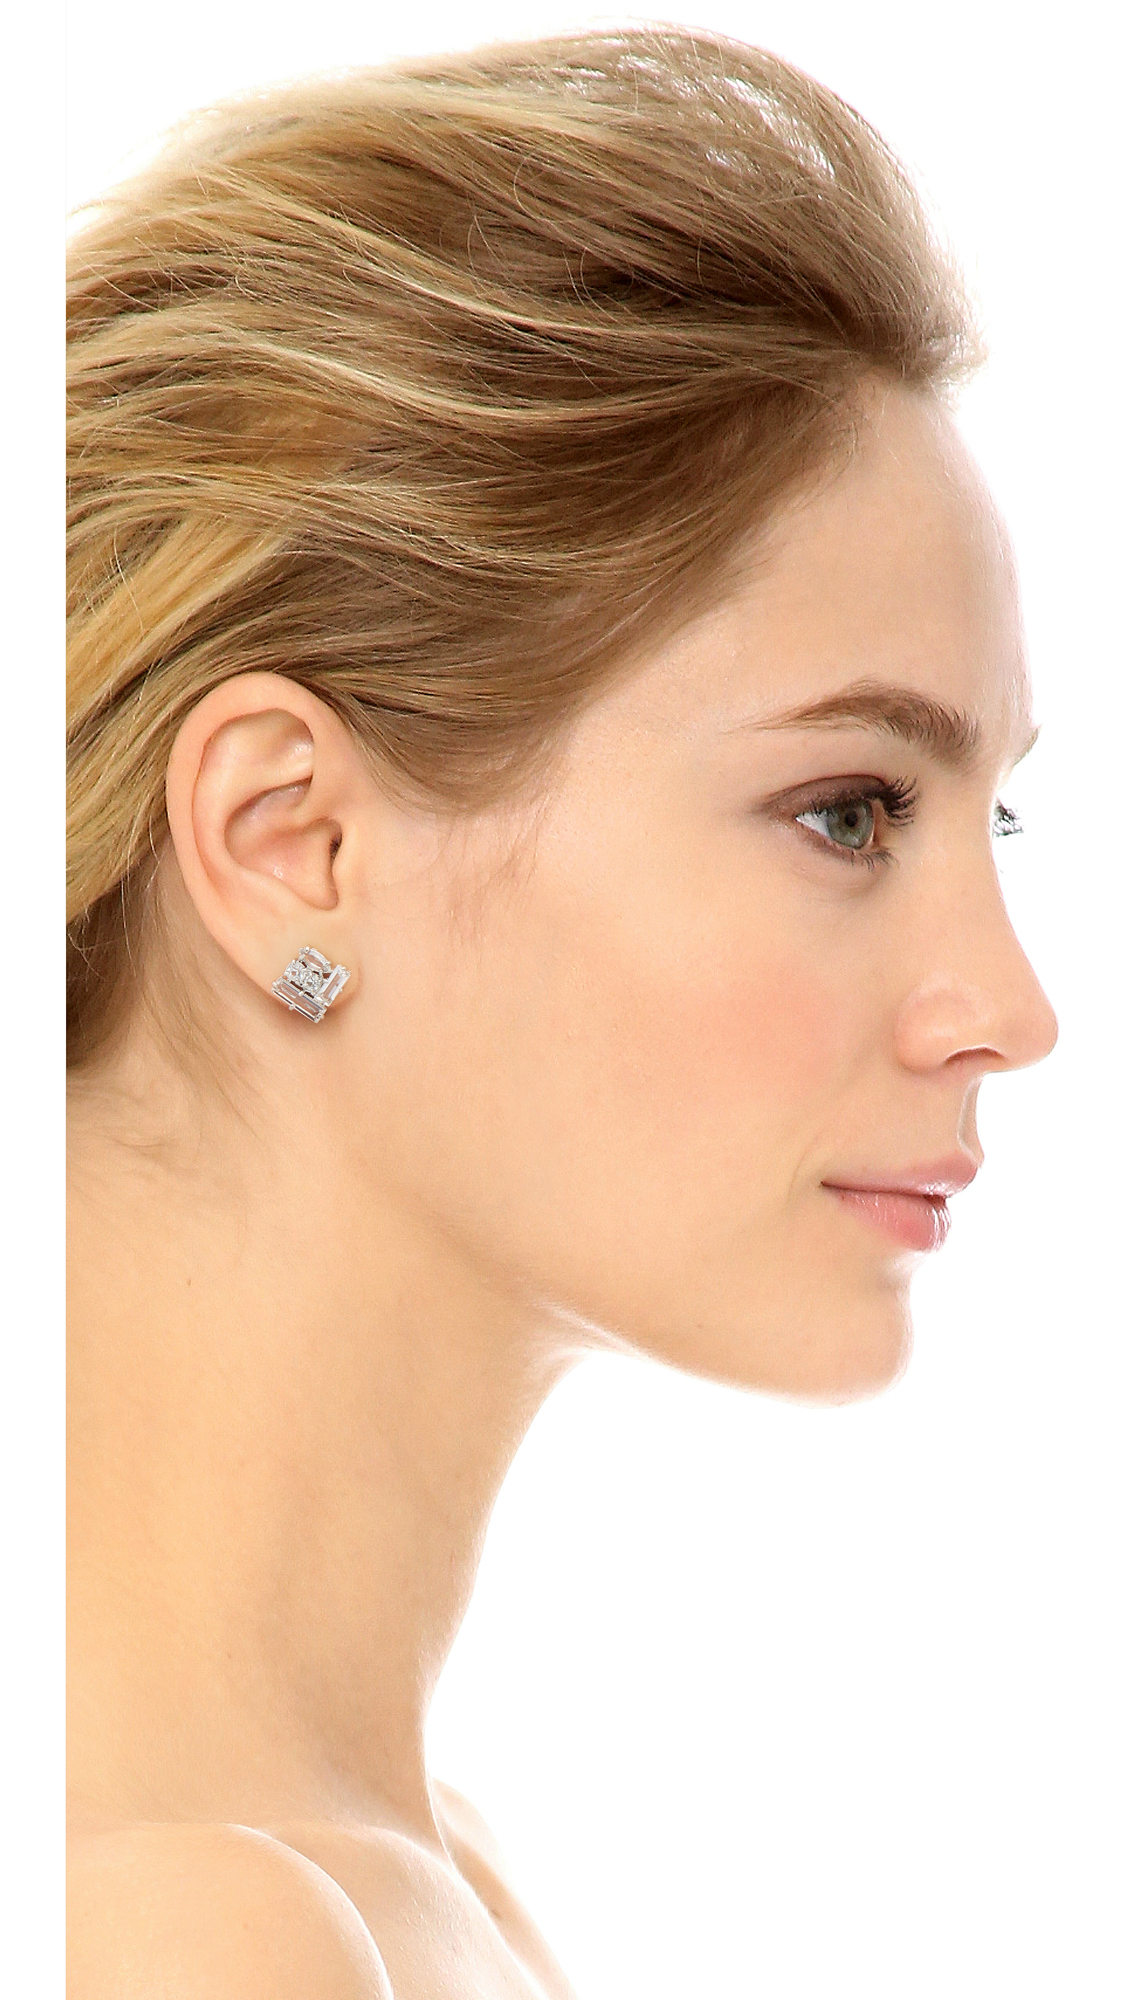 Kate spade new york Catching Light Studs Earrings - Clear in ...